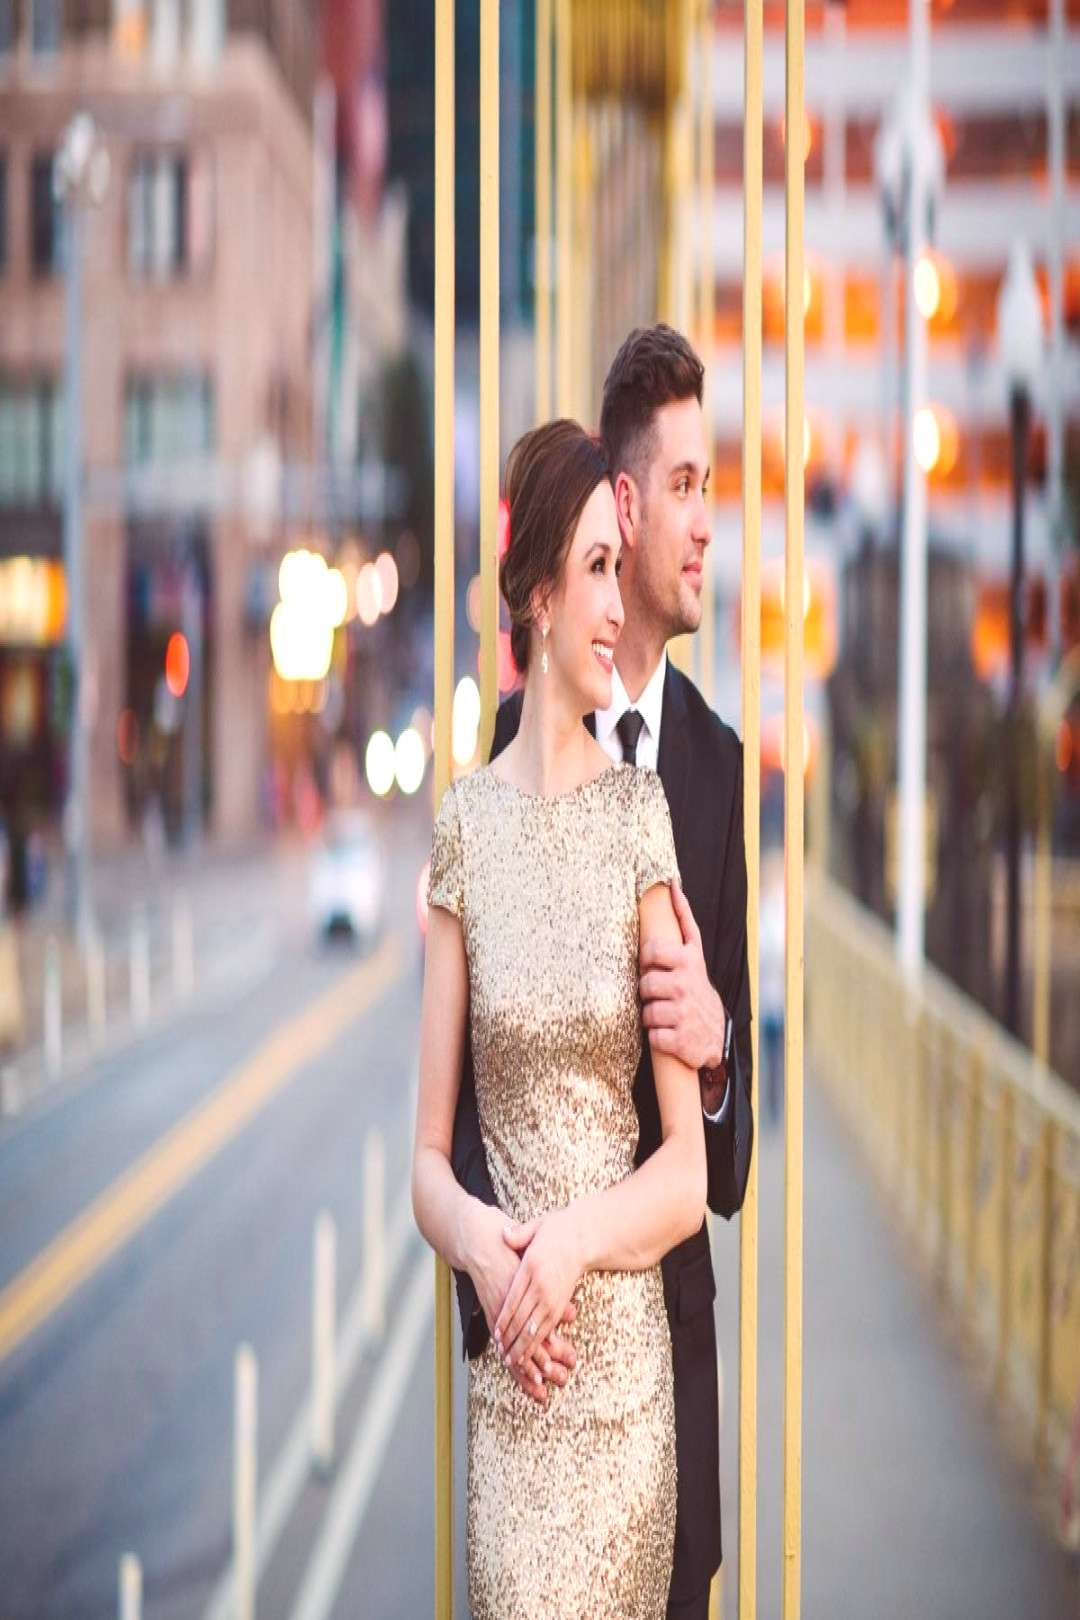 Fancy Downtown Pittsburgh Engagement Session - Fancy Downtown Pittsburgh Engagement Session. For m